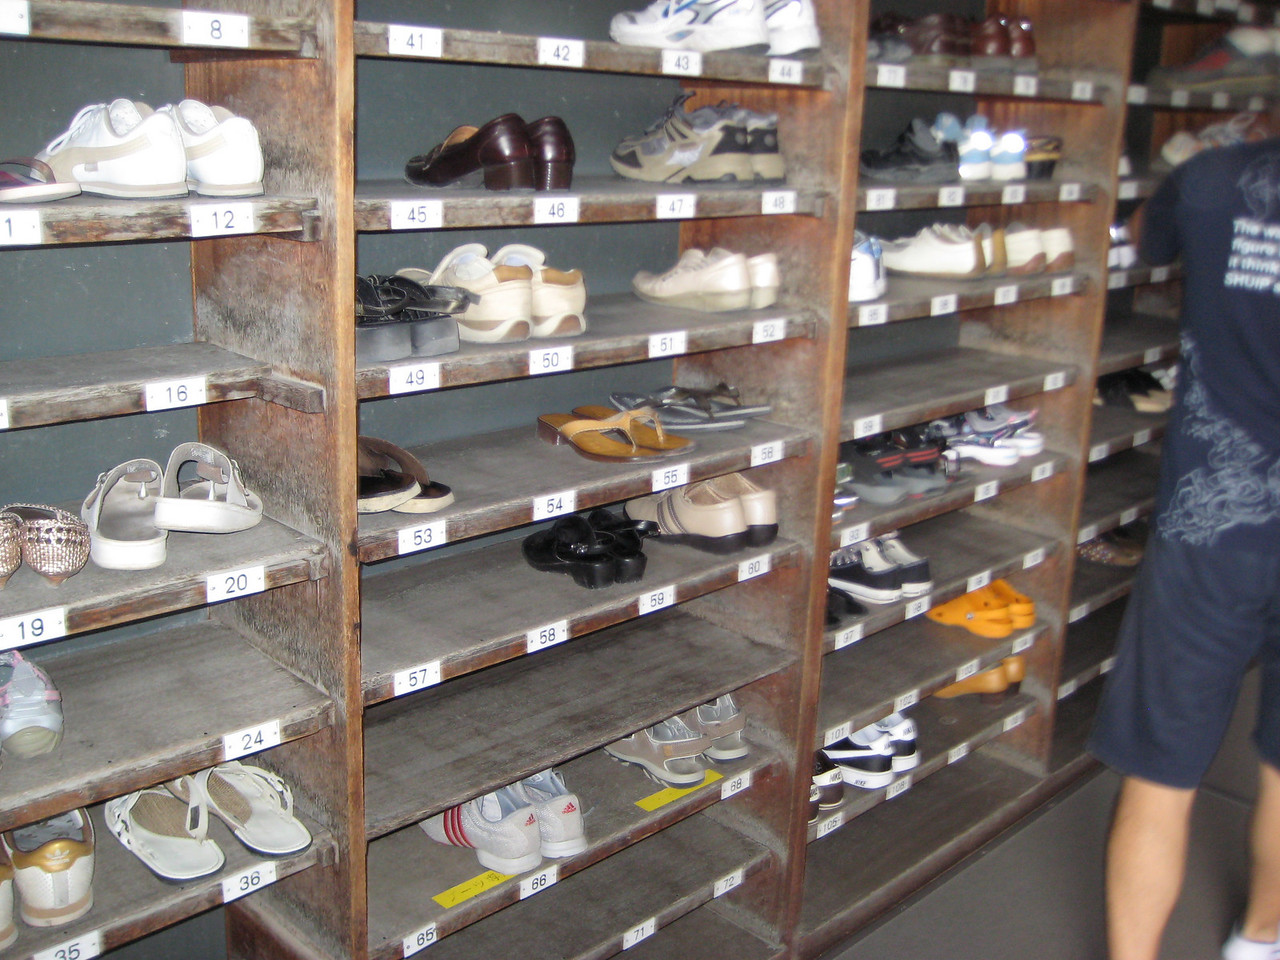 Inside almost every home in Japan is the genkan, a foyer sort of area where you remove your shoes in order to keep from tracking dirt into the home.